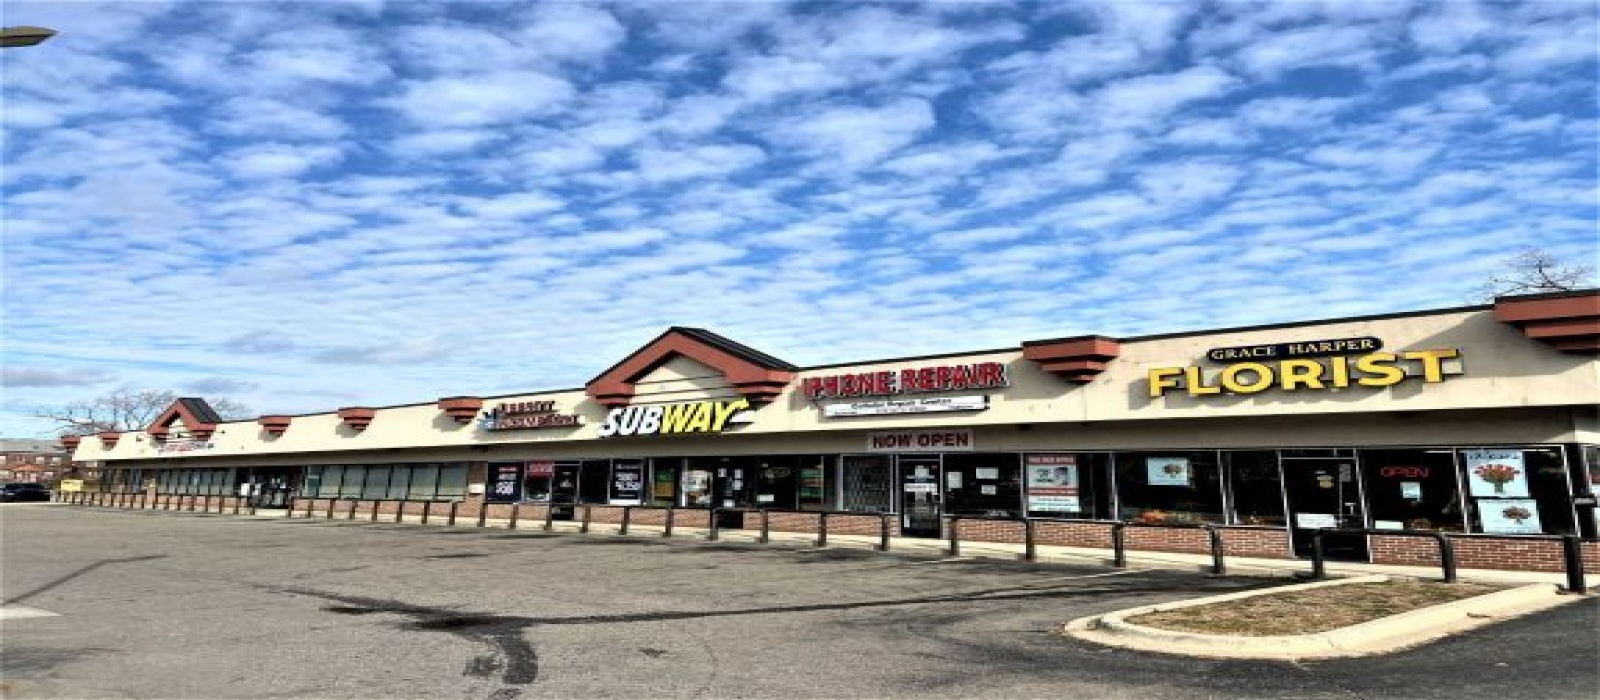 9300 - 9350 Woodward Ave., Detroit, Michigan 48202, ,Retail,For Lease,9300 - 9350 Woodward Ave.,1025